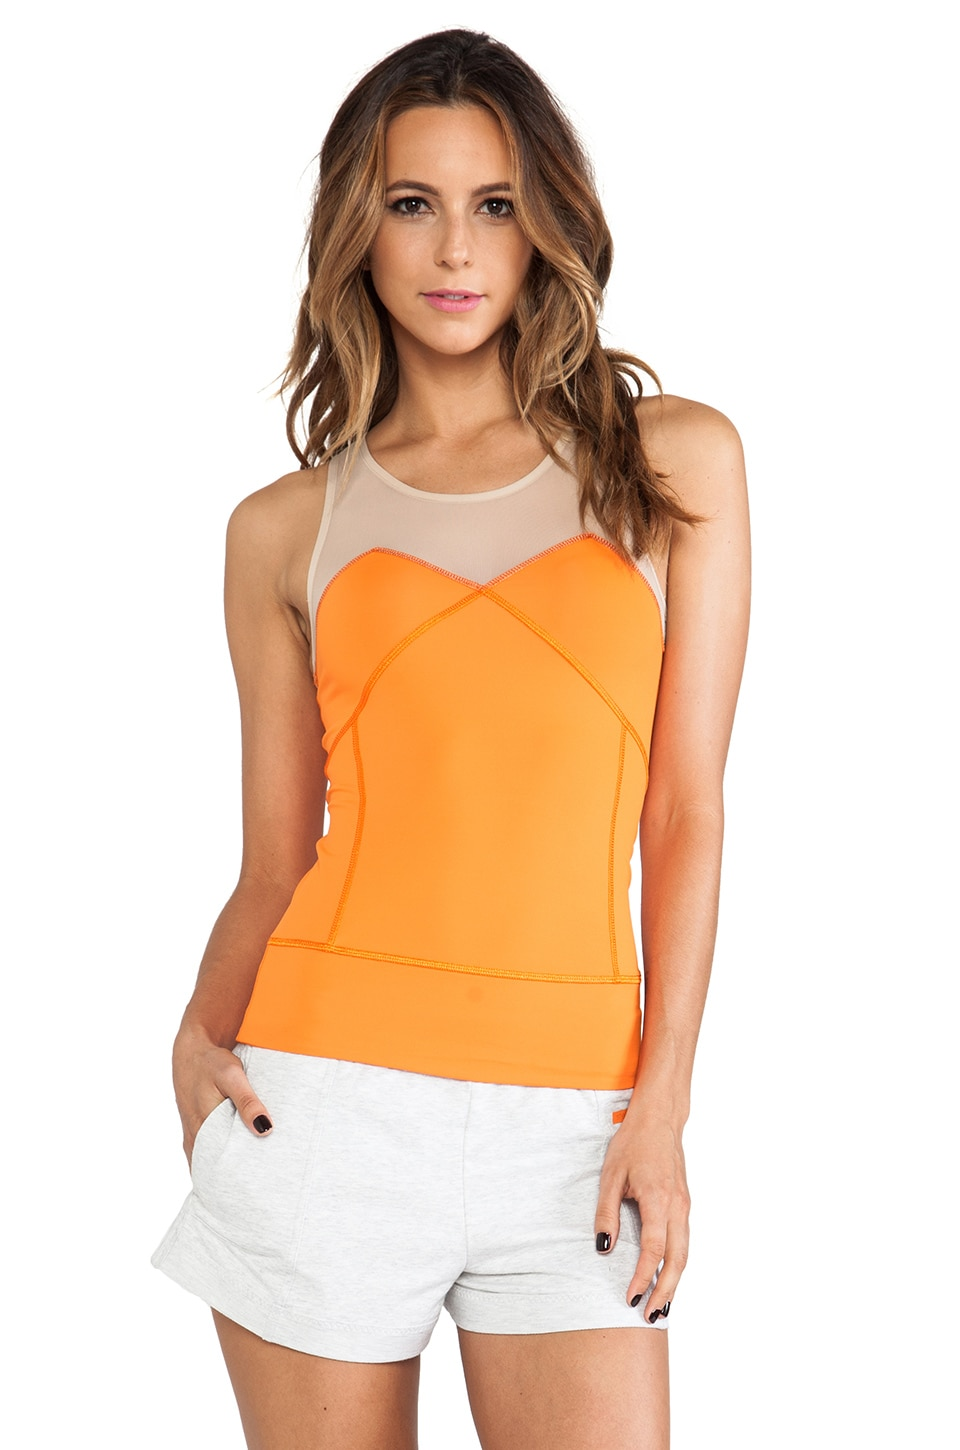 adidas by Stella McCartney Run Perf Tank in Intense Orange & Ginger